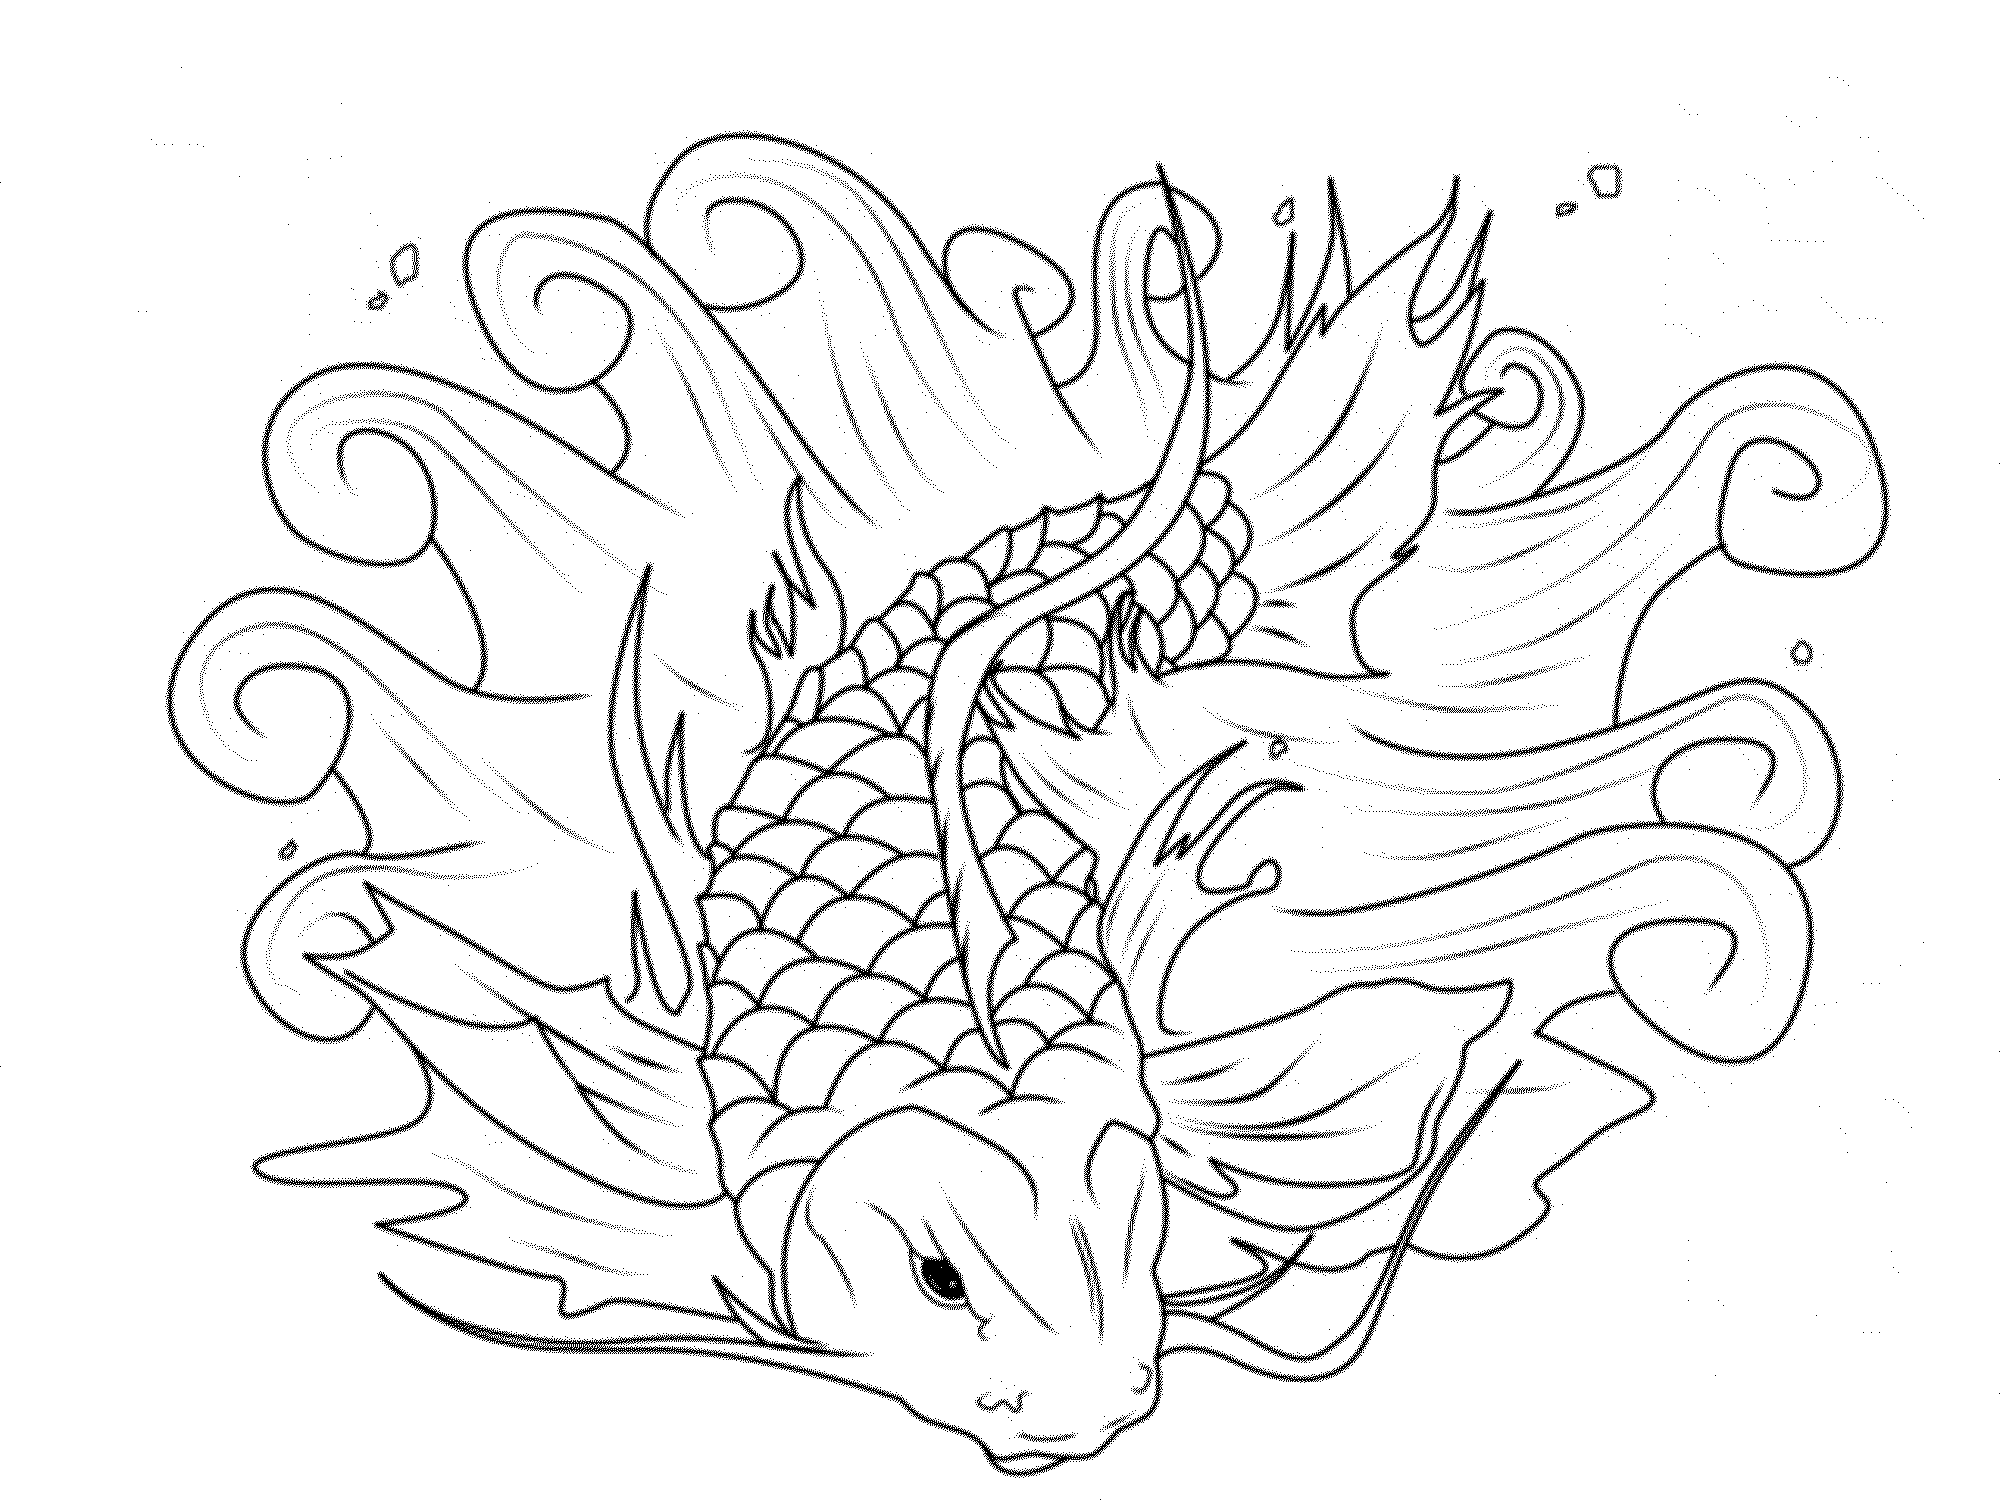 2000x1500 Koi Fish Coloring Page Printable Koi Fish And Red Fish